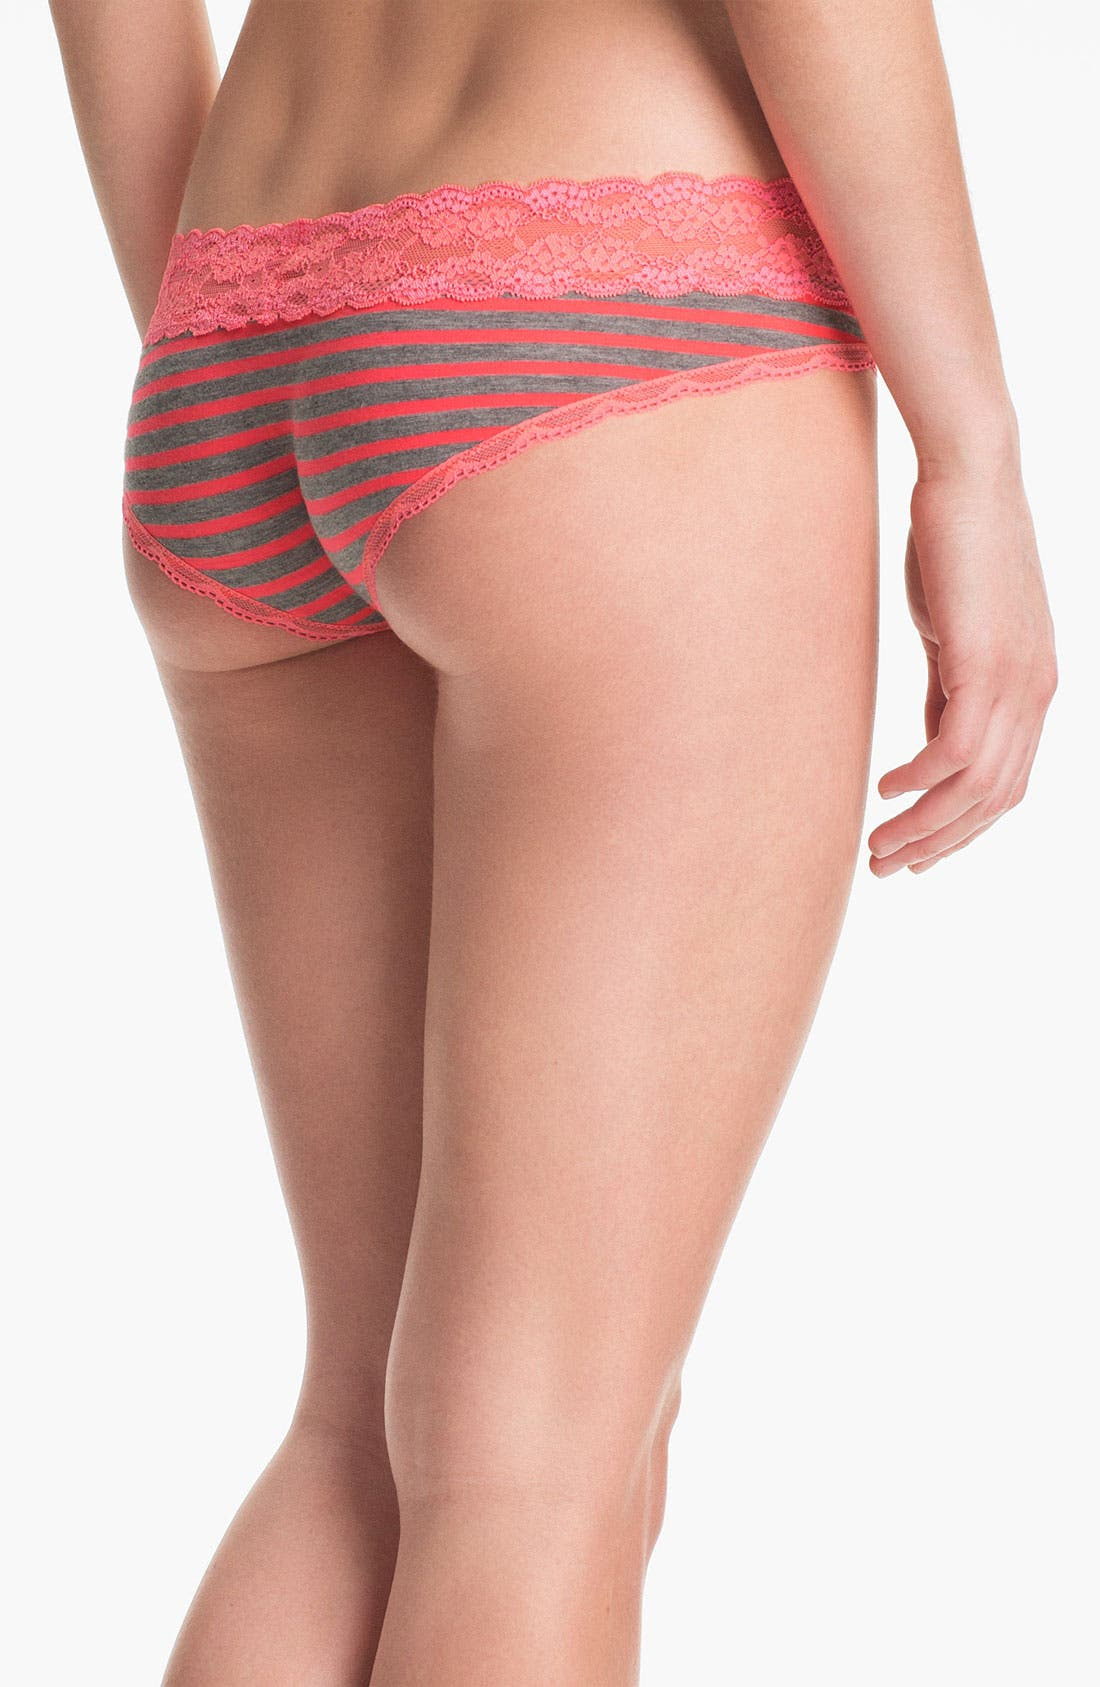 Alternate Image 2  - Honeydew Intimates 'Zenith' Lace & Stripe Hipster Briefs (3 for $30)